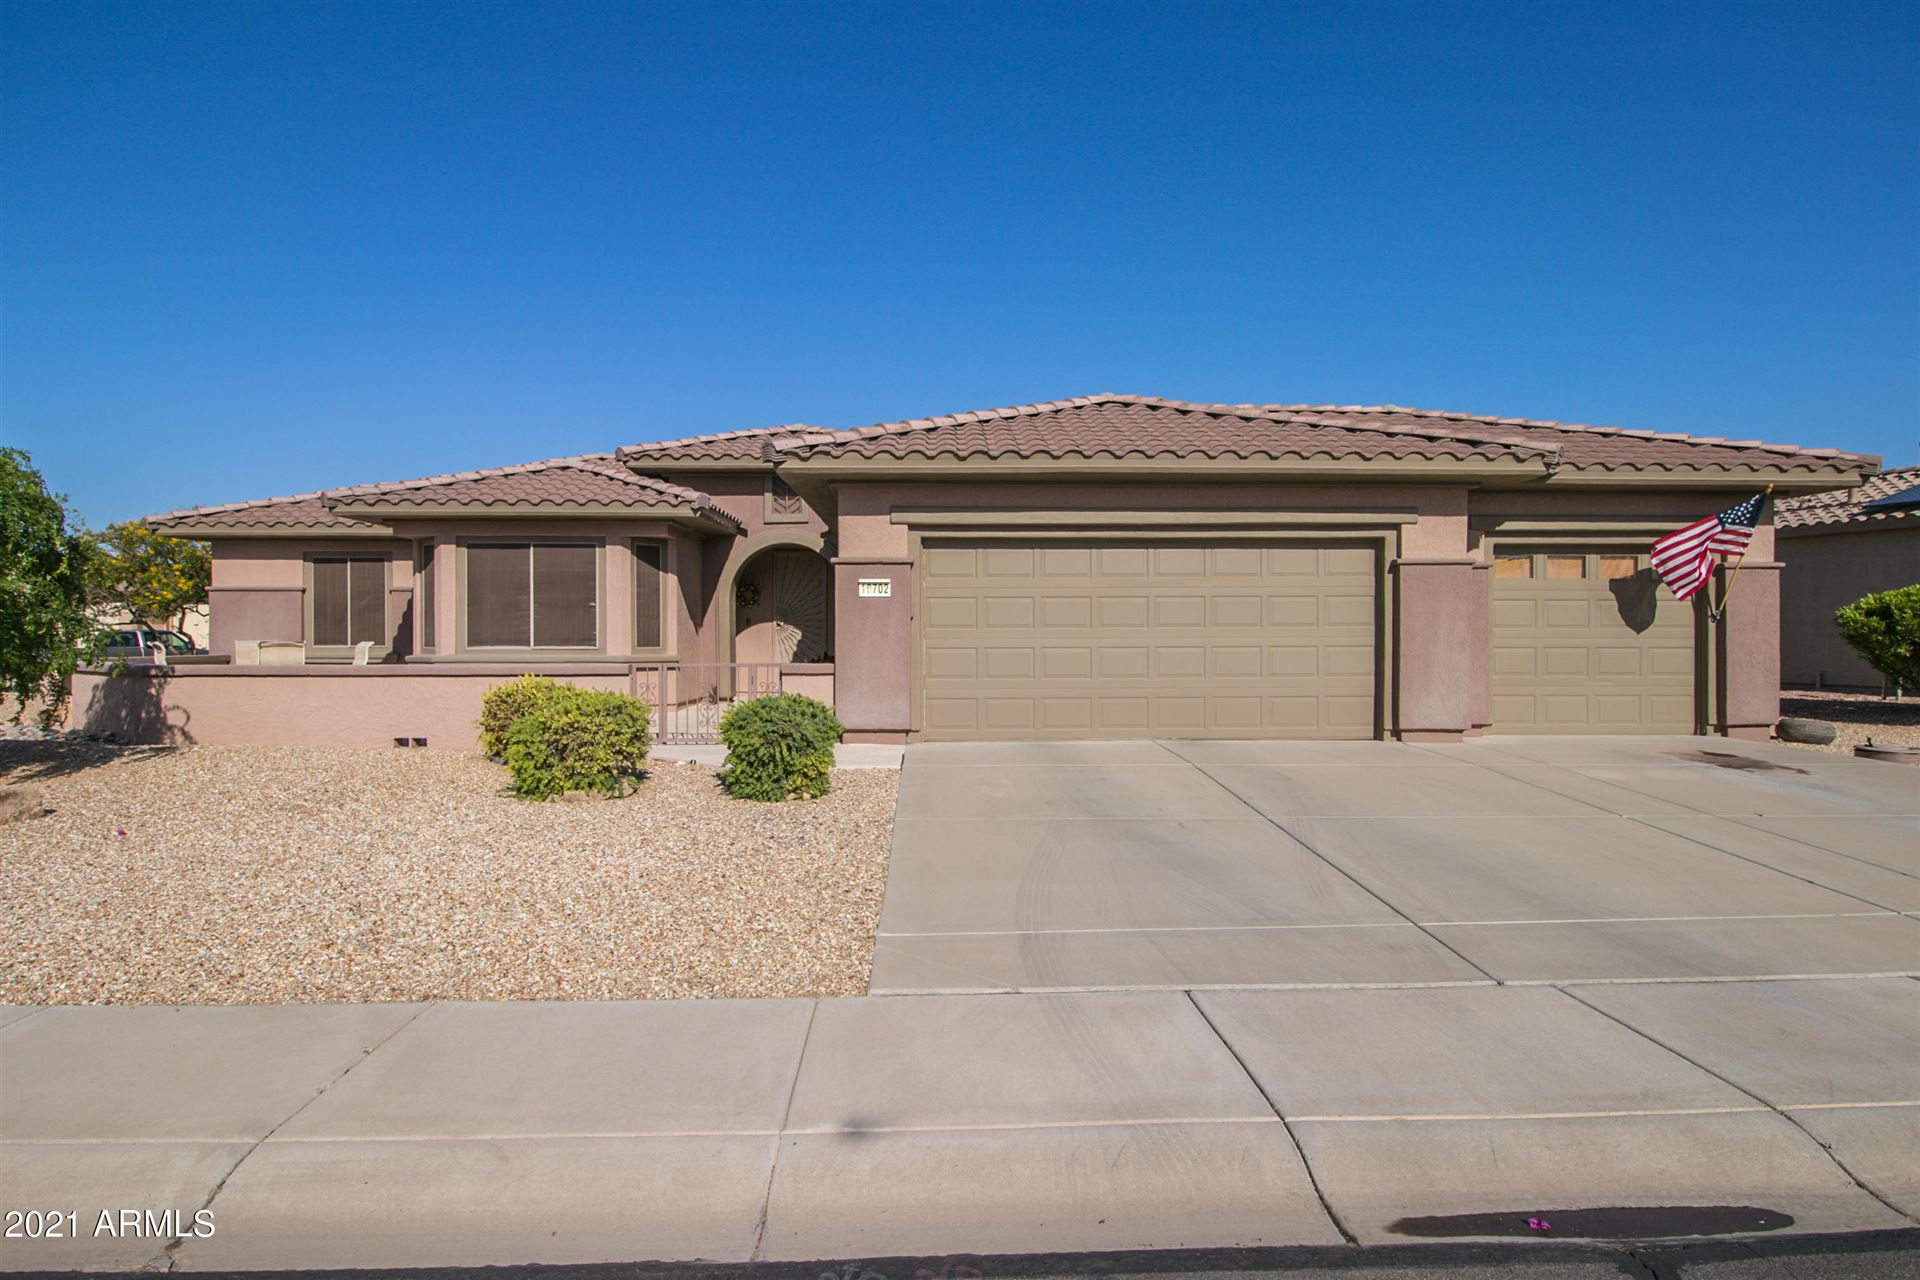 19702 N DESERT SONG Way, Surprise, AZ 85374 - MLS#: 6217804